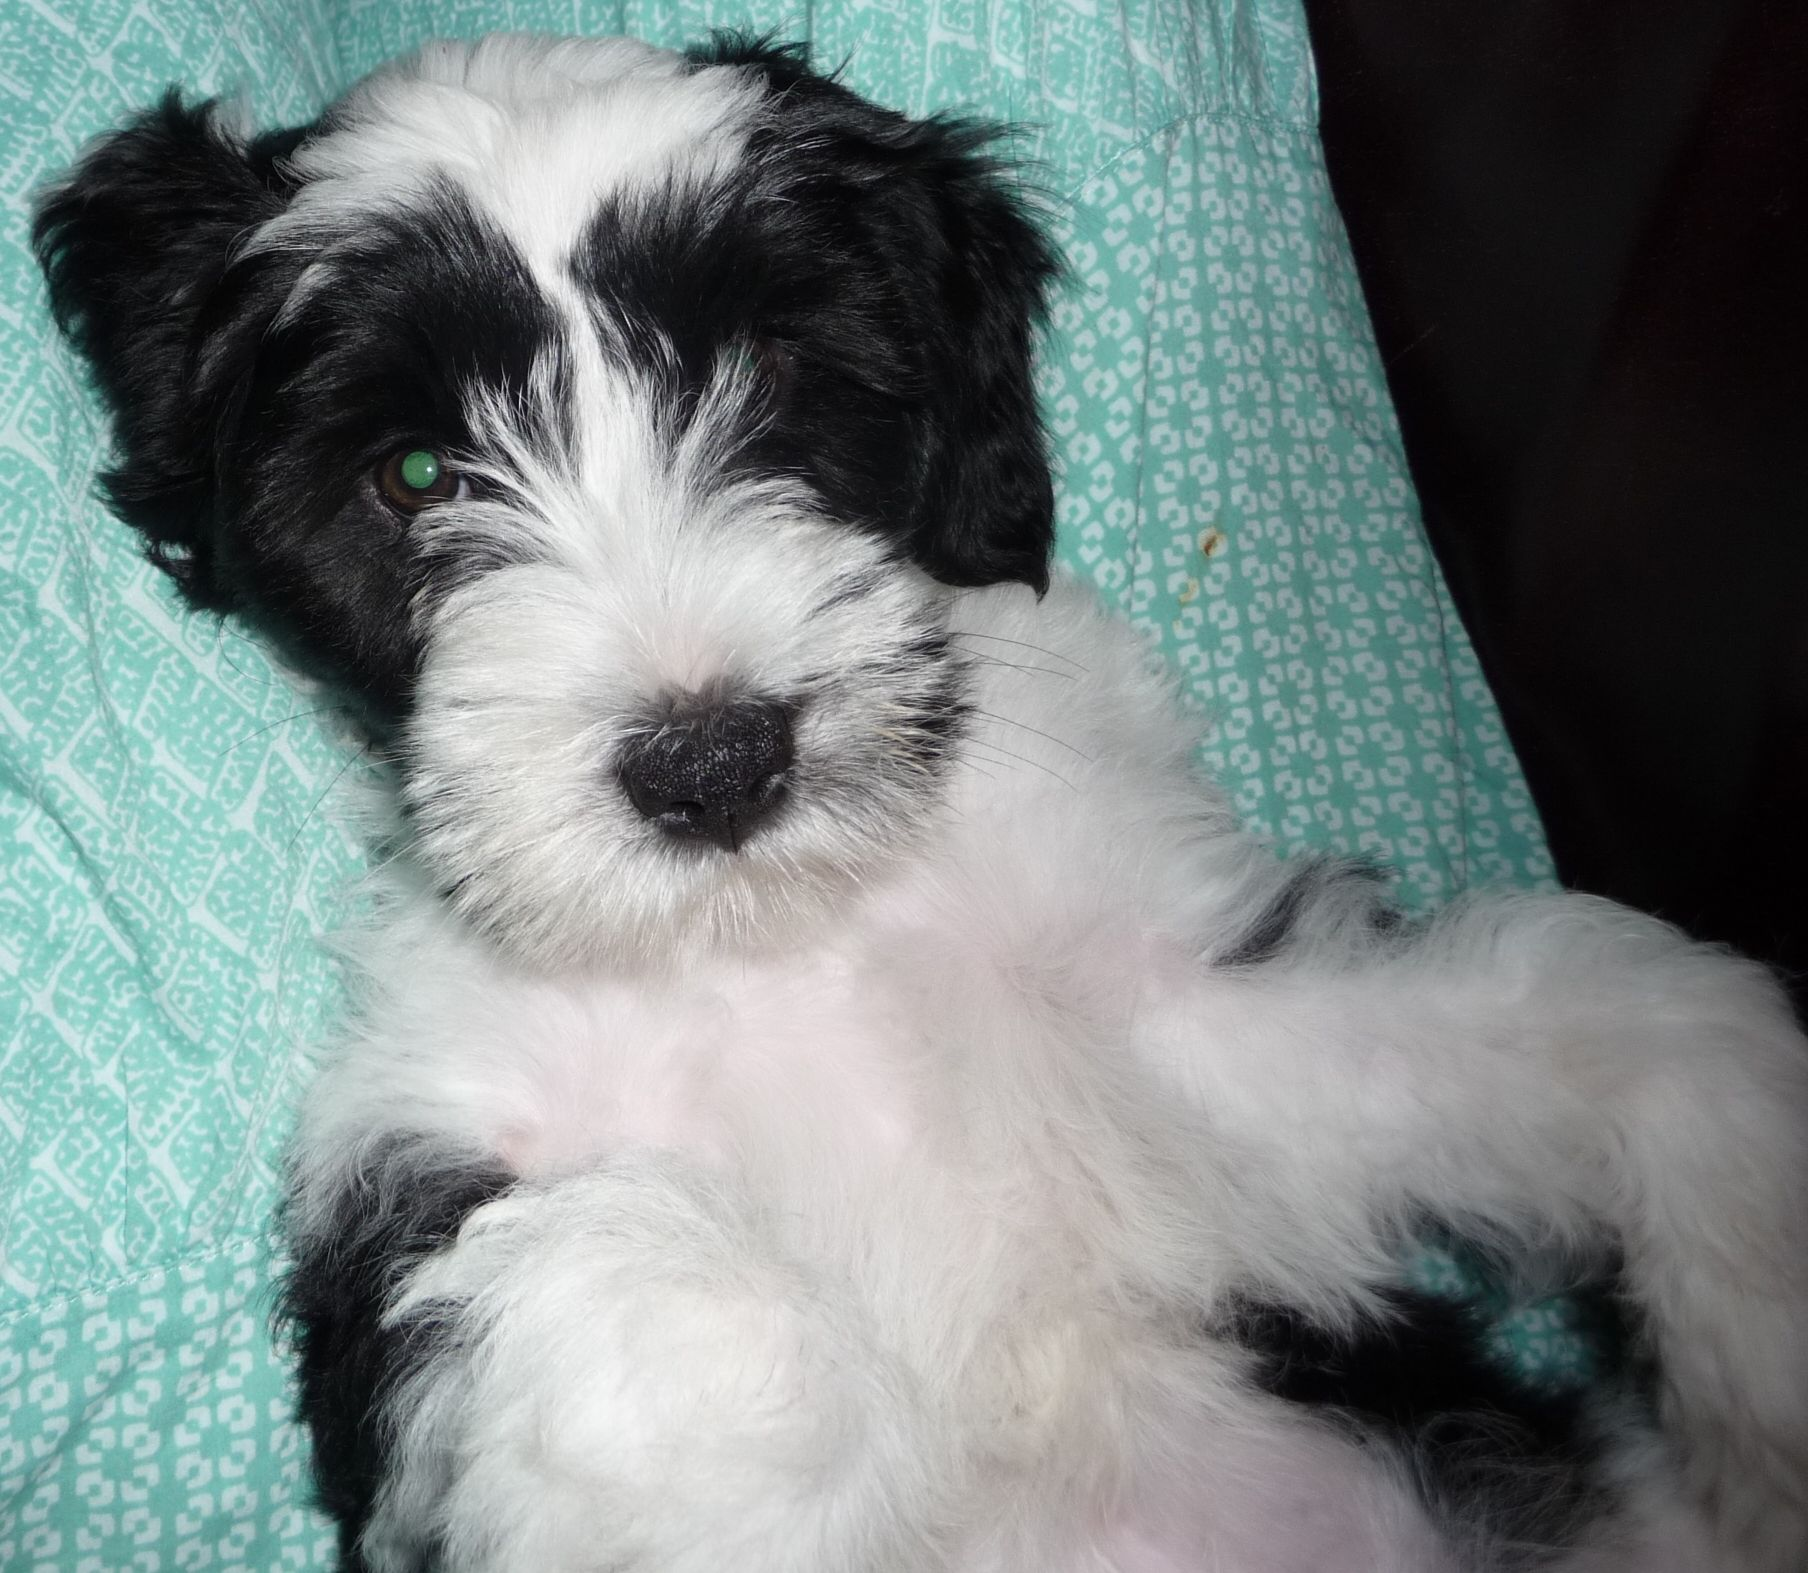 Daisy, a black and white Tibetan Terrier puppy, at 11